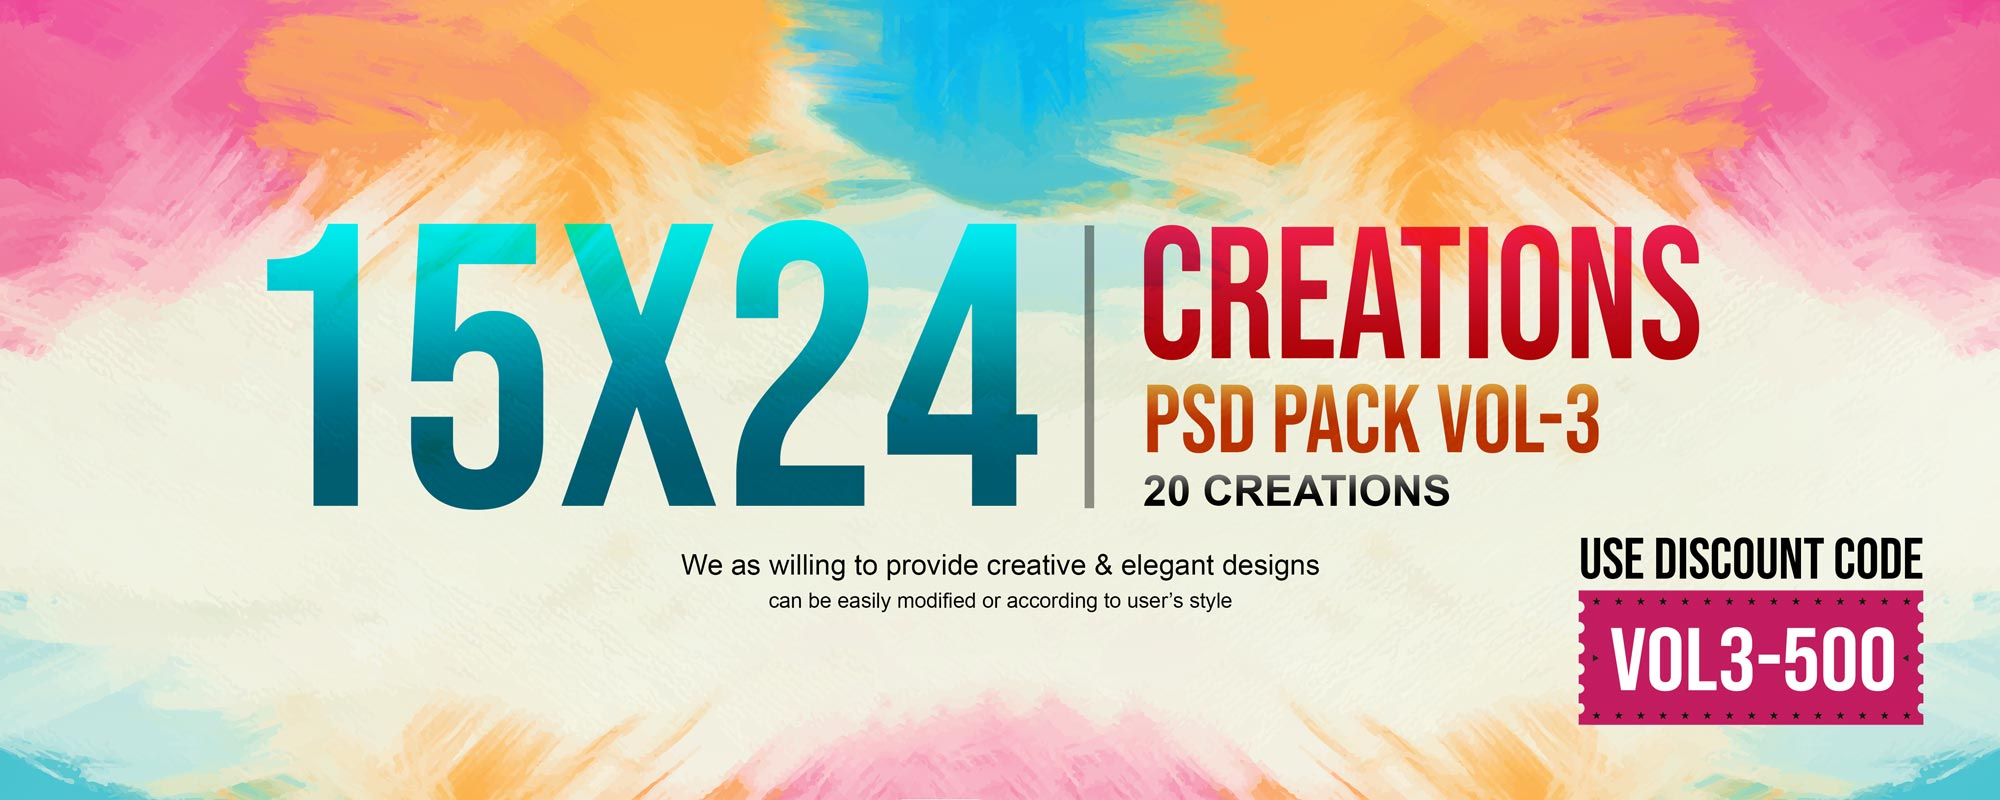 15×24 Creations Pack Vol-3